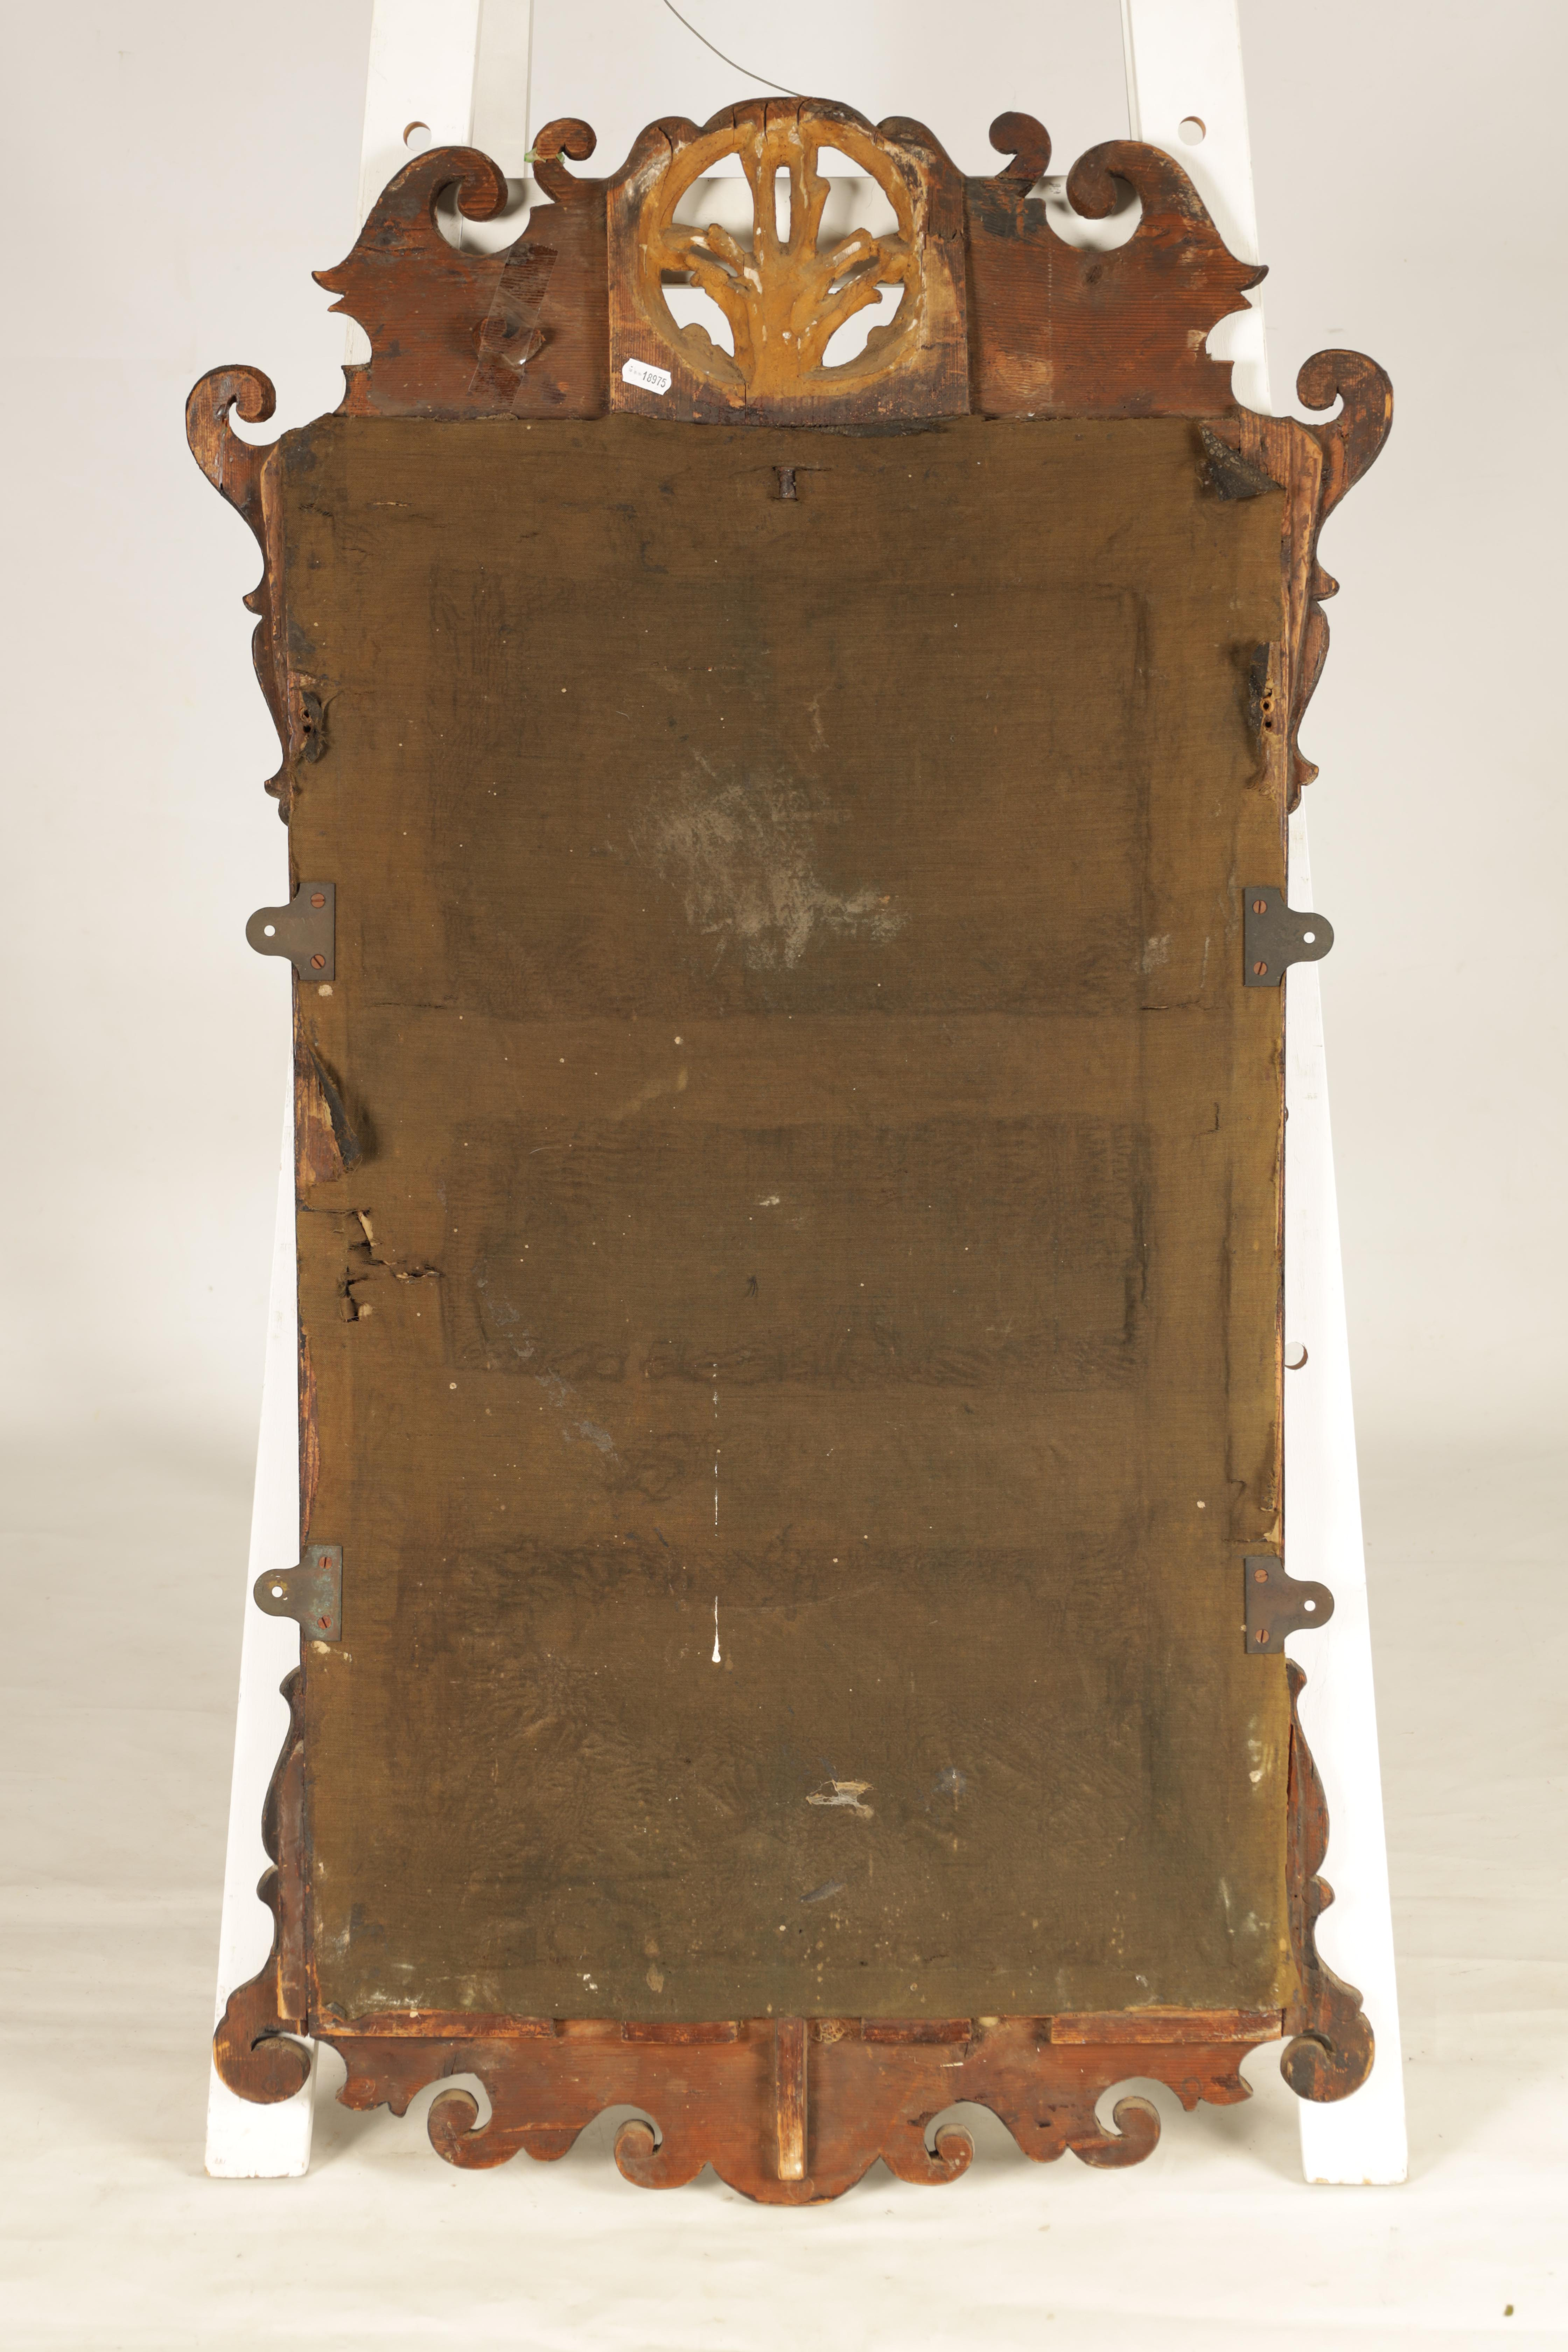 AN 18TH CENTURY WALNUT PIER MIRROR with shaped scrolled frame and gilt carved rococo pediment, the - Image 5 of 5